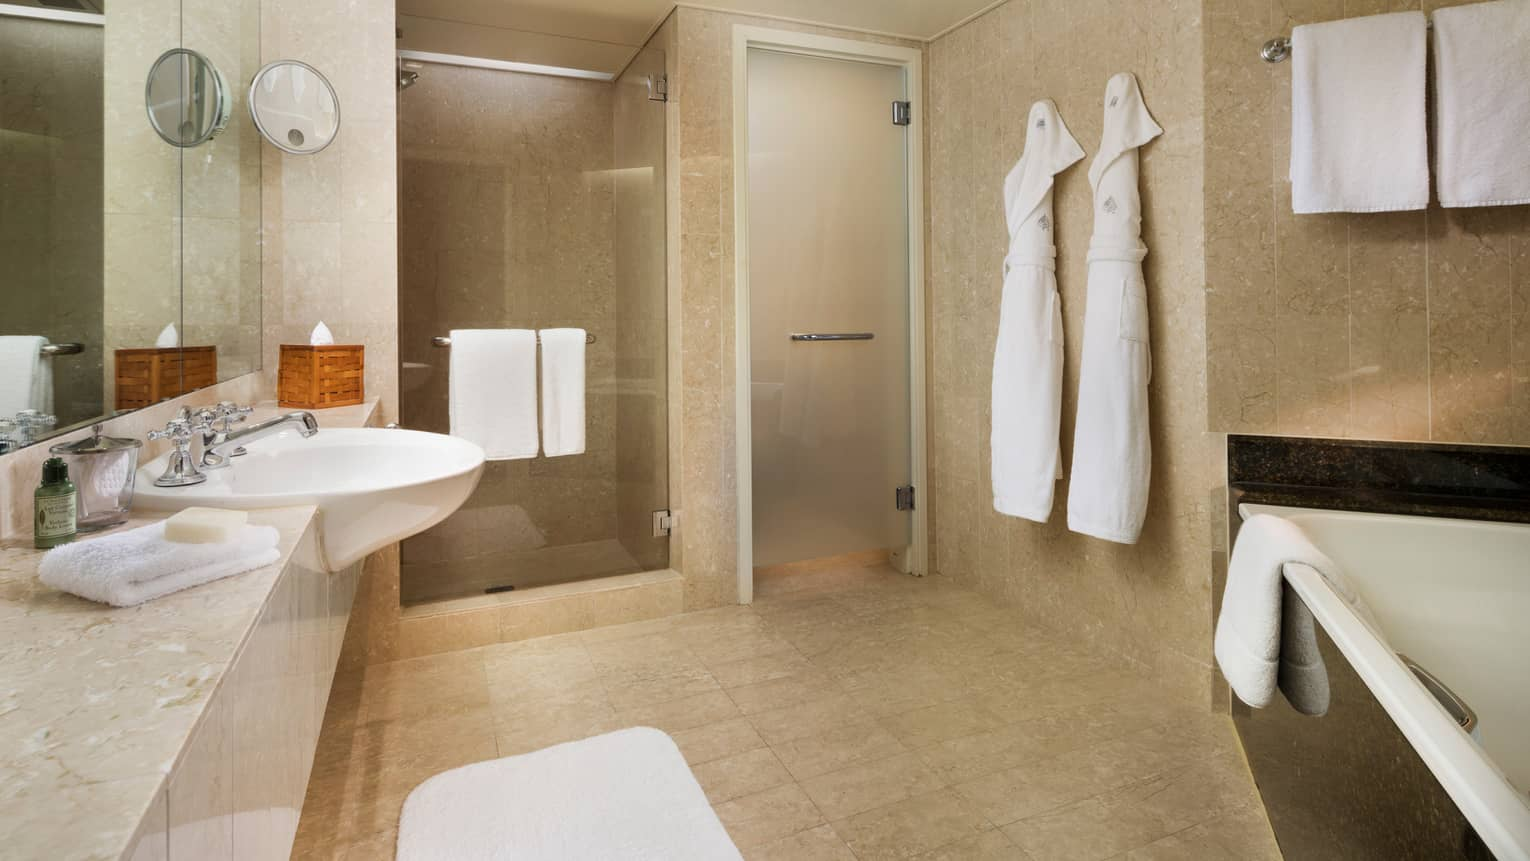 Hotel Suite full marble bathroom, two white robes hang by glass walk-in showers, sink